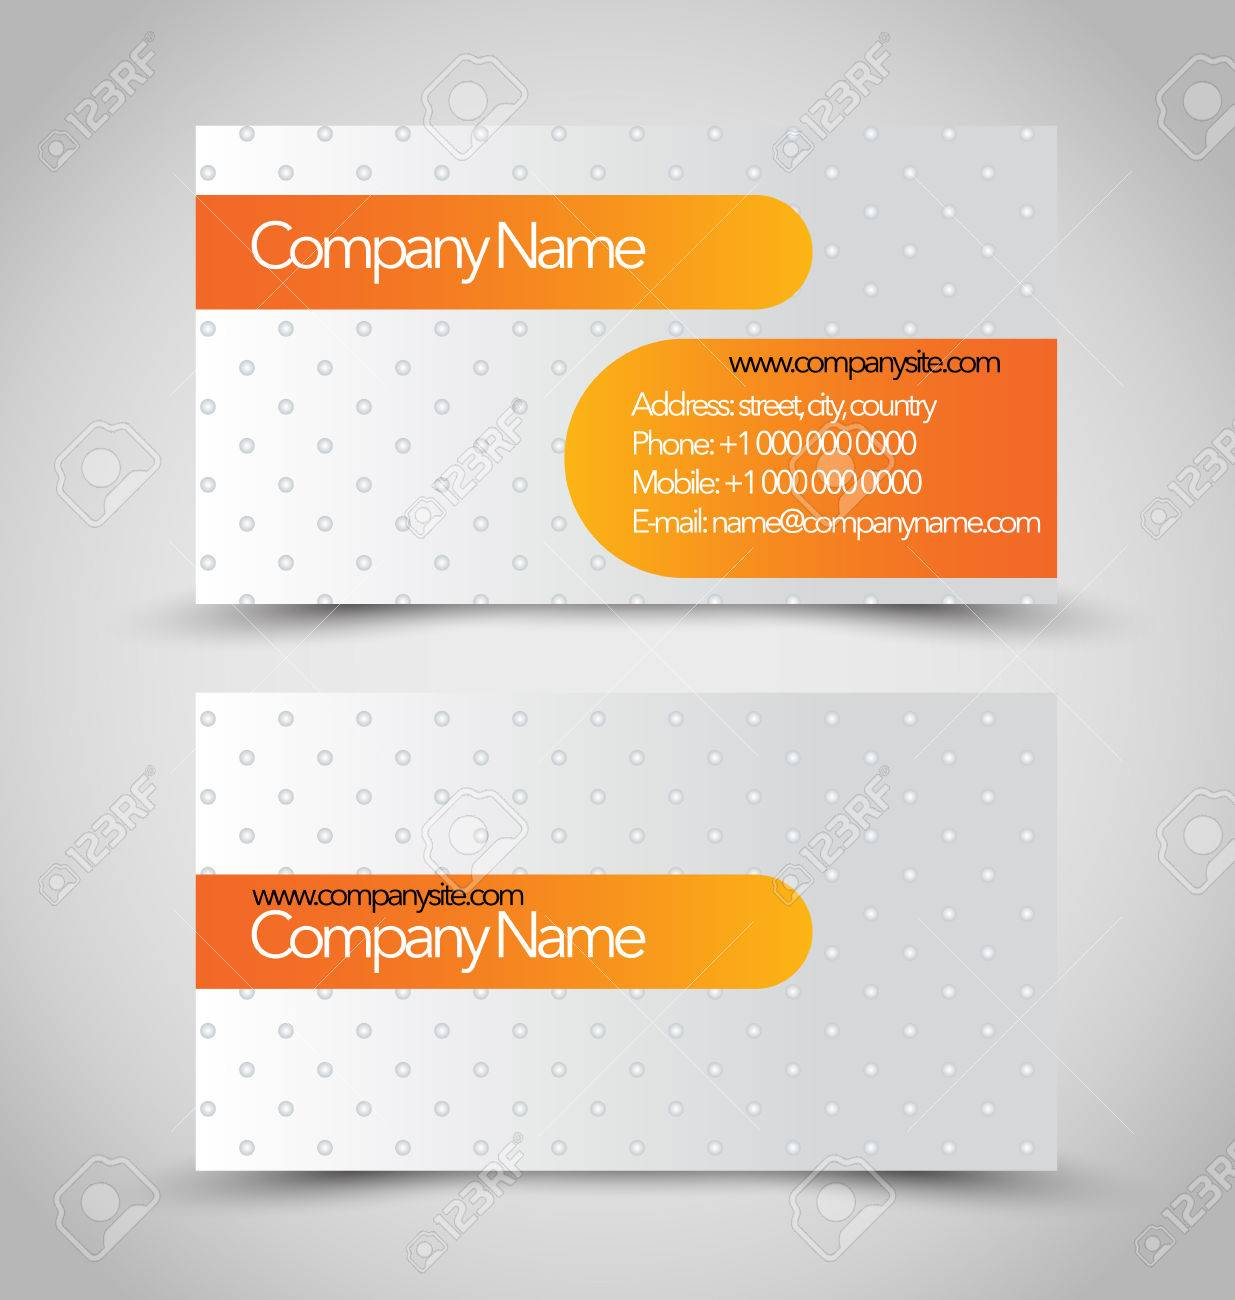 Orange And Silver Grey Color Vector Illustration Stock